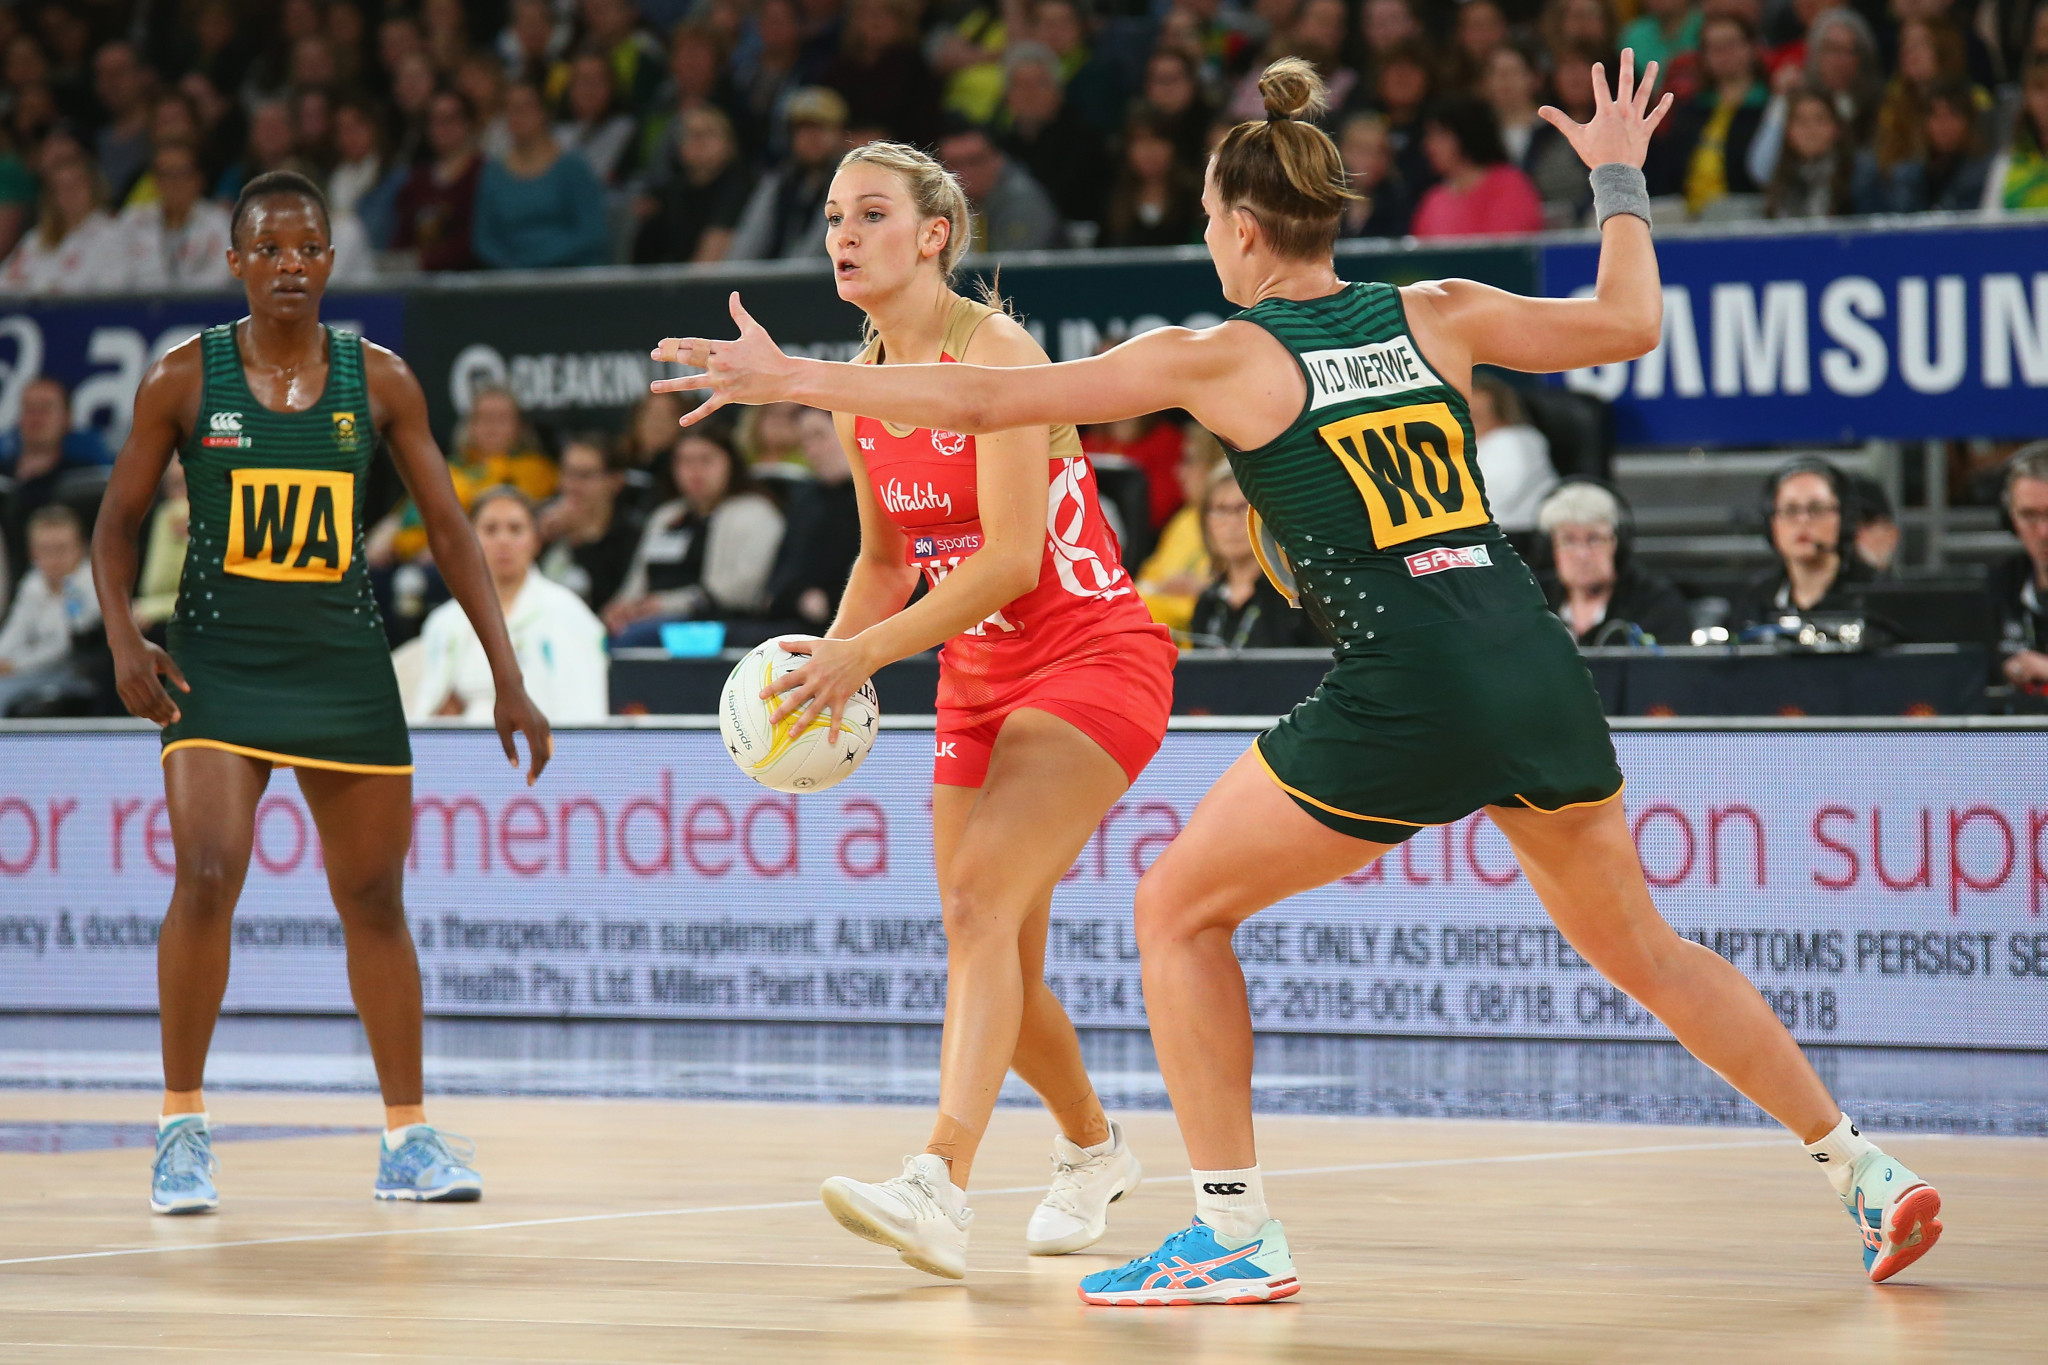 Vitality also sponsors the England netball team who will be hoping for success at their home World Cup ©Getty Images